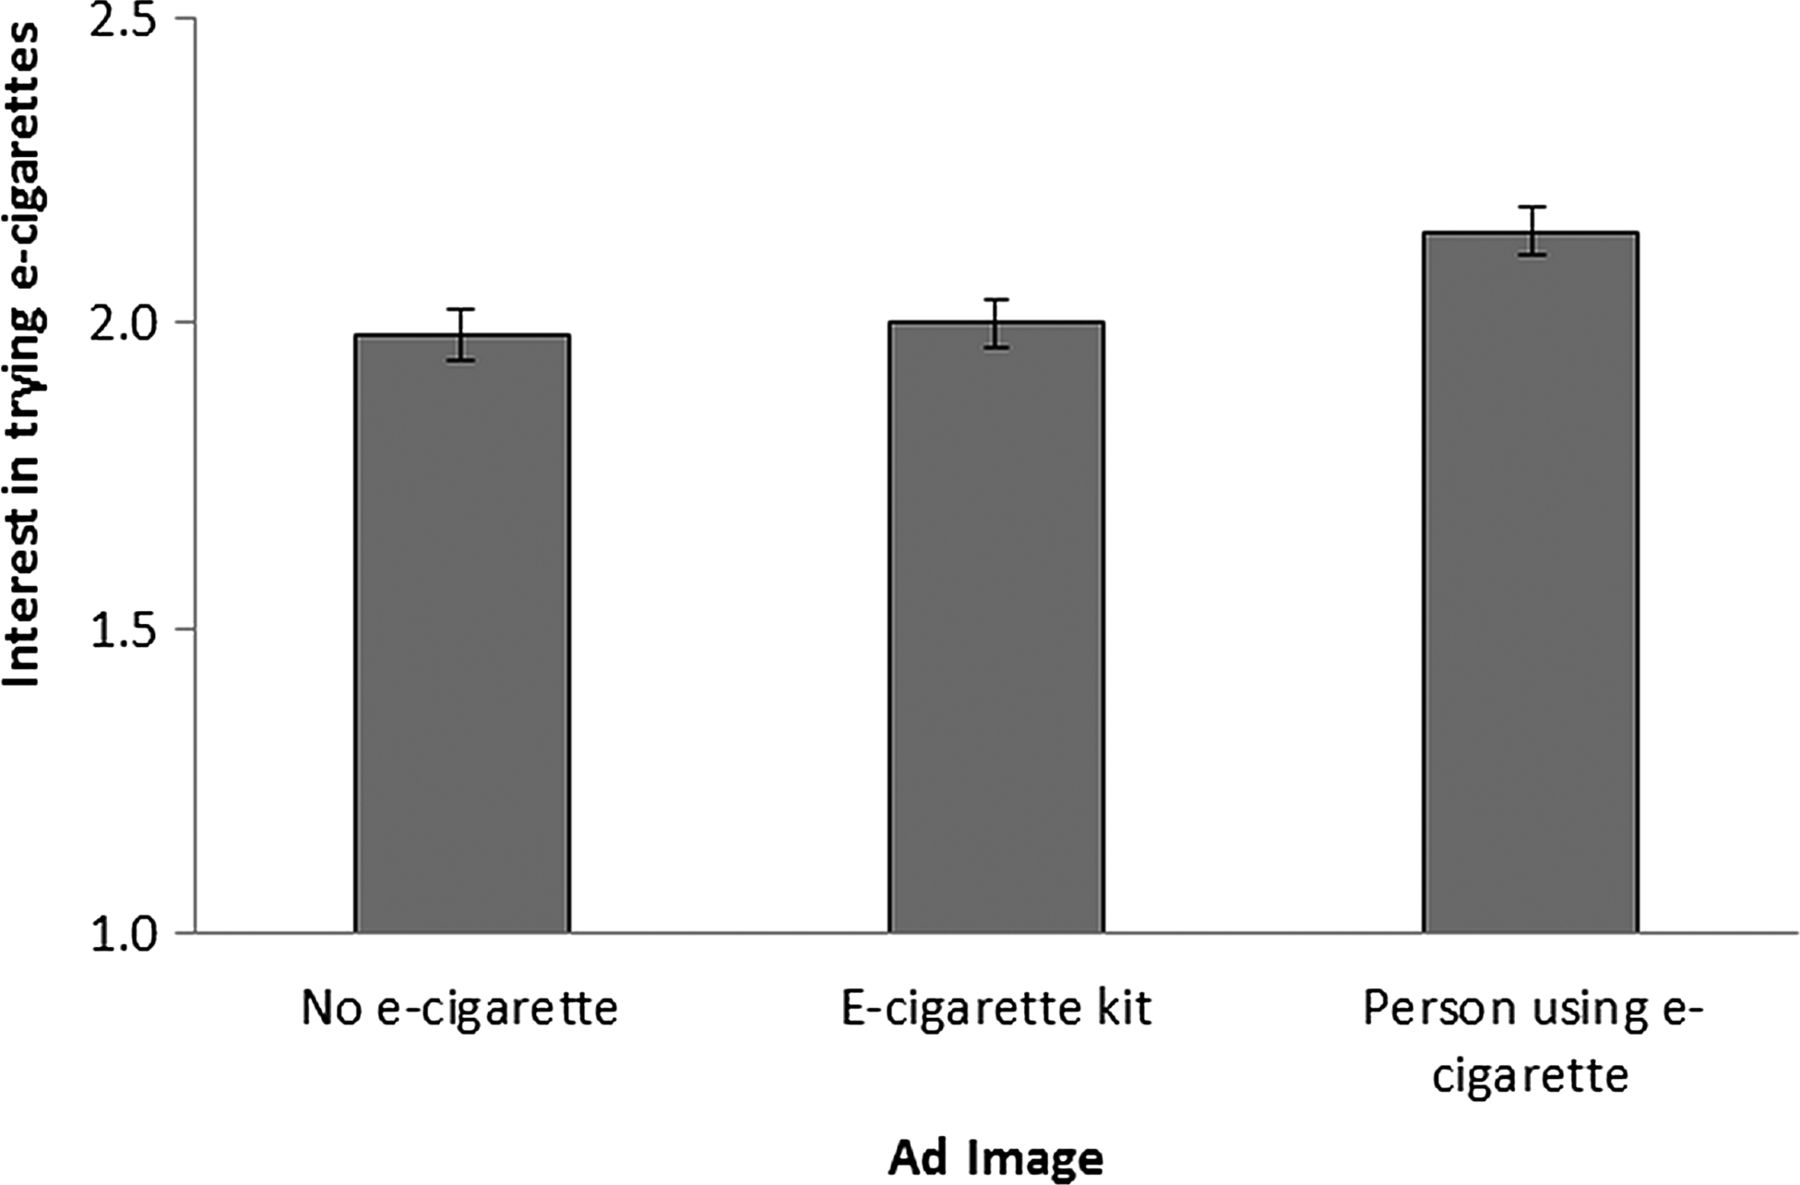 harmful effects of advertising